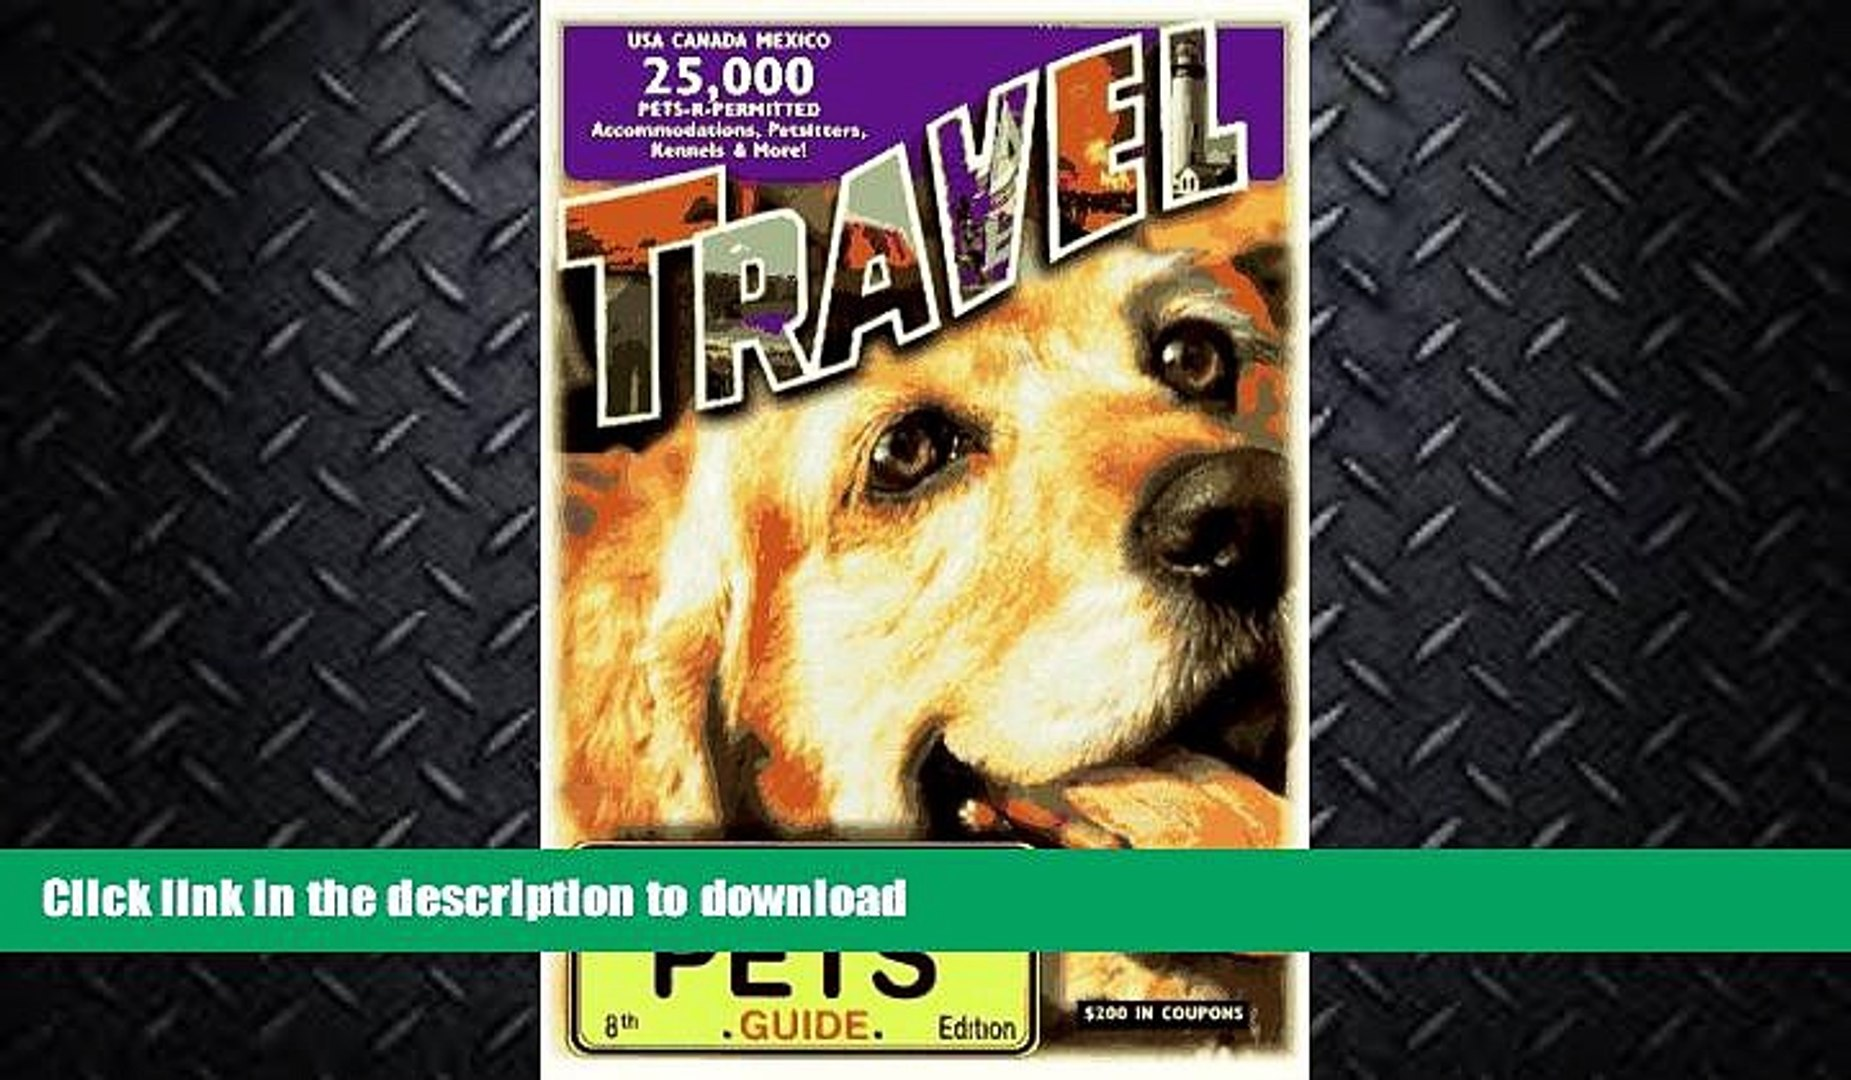 READ BOOK  Travel with or Without Pets: 25,000 Pets-R-Permitted Accomodations, Petsitters,